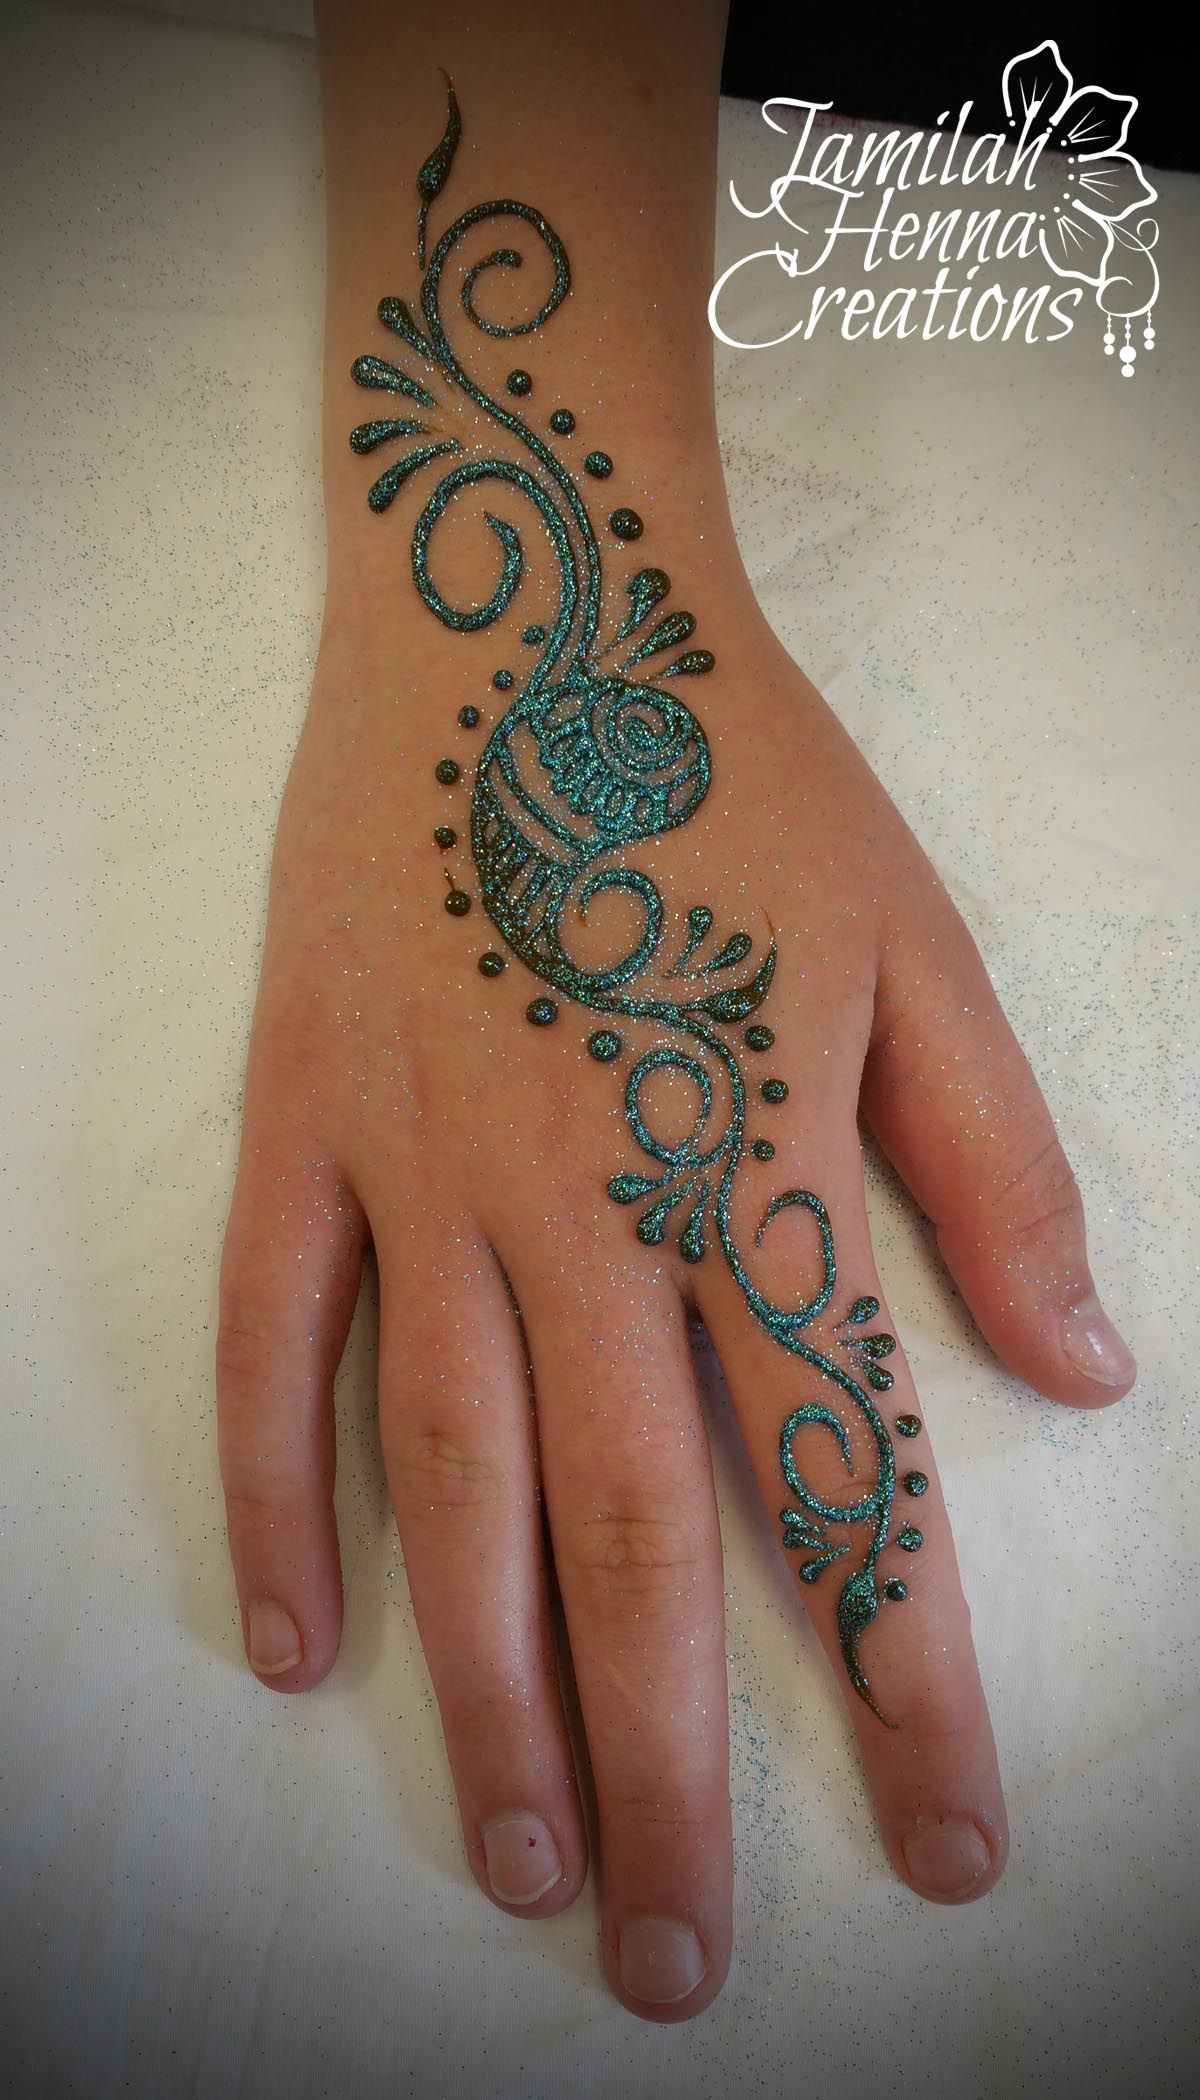 Simple Henna Tattoo Designs For Wrist: Paisley Henna Swirls Www.jamilahhennacreations.com